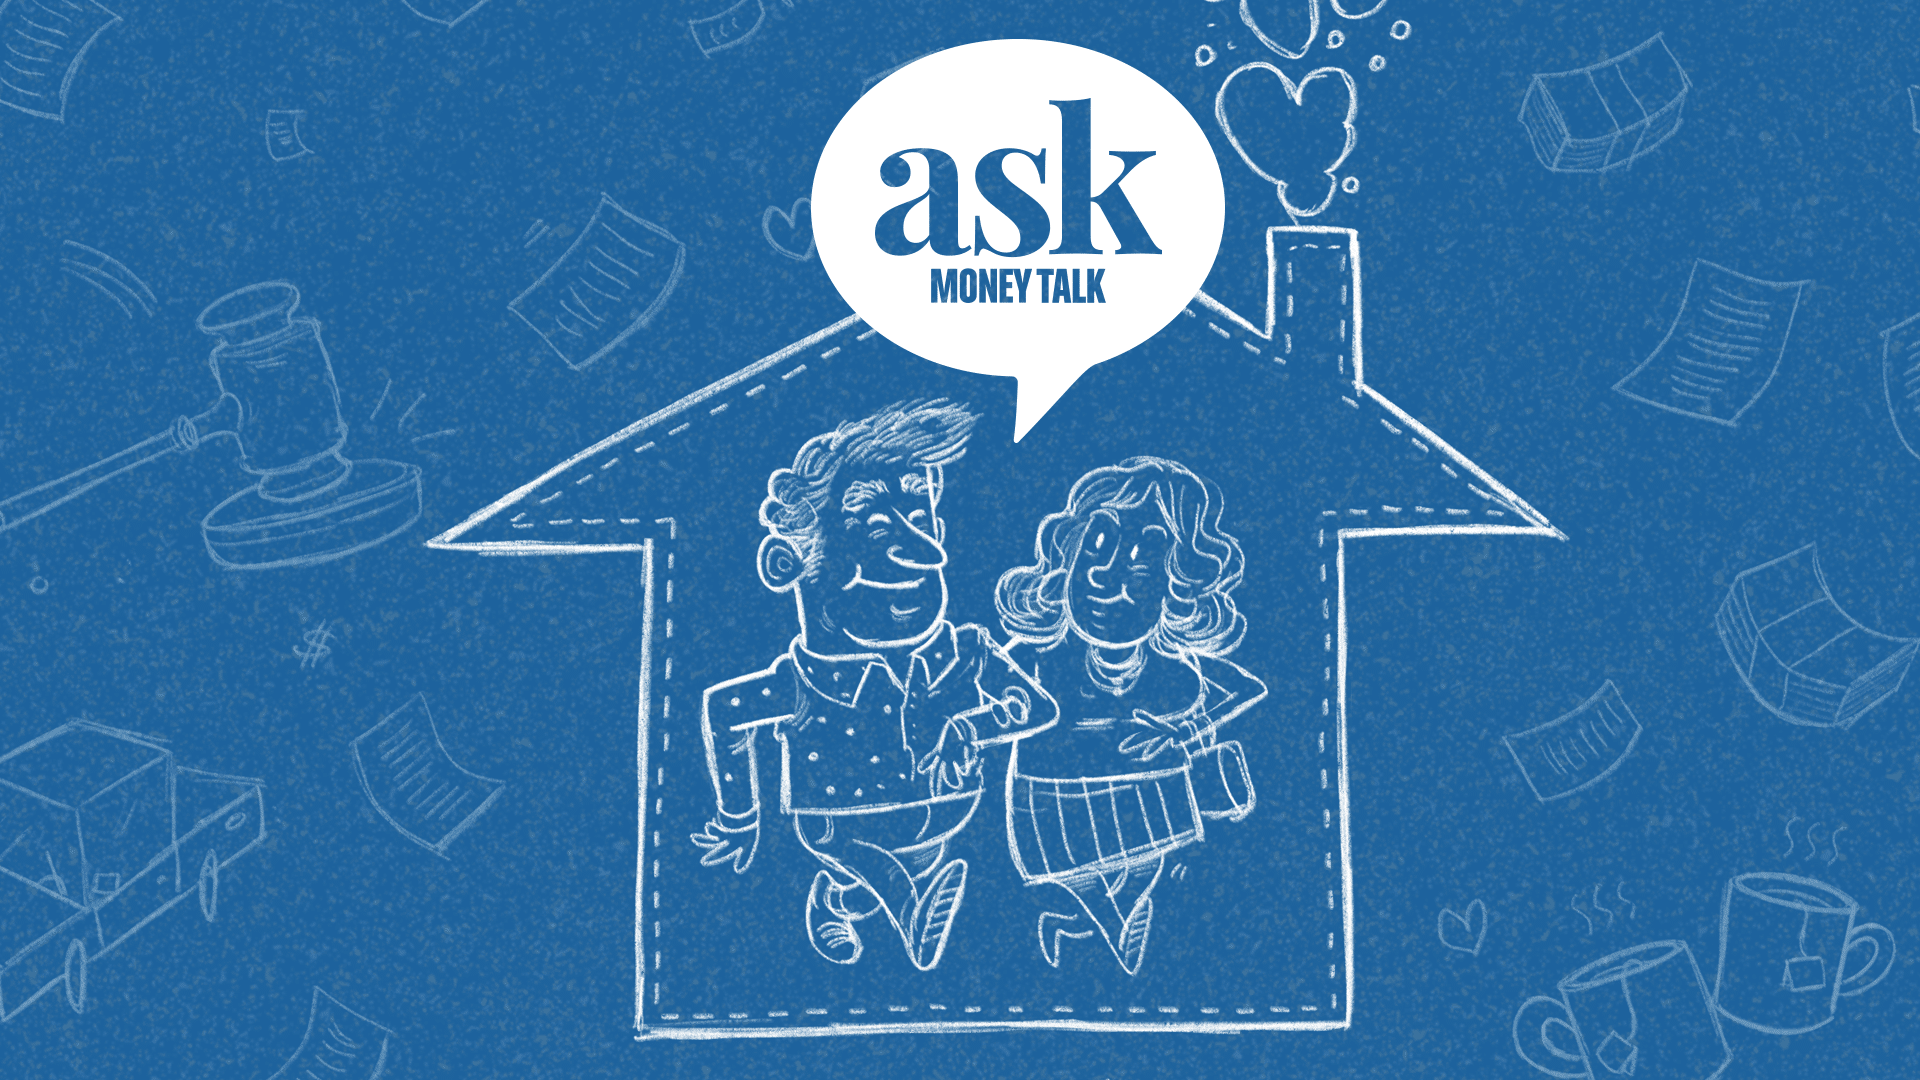 Happy couple in a house surrounded by money, with askmoneytalk logo